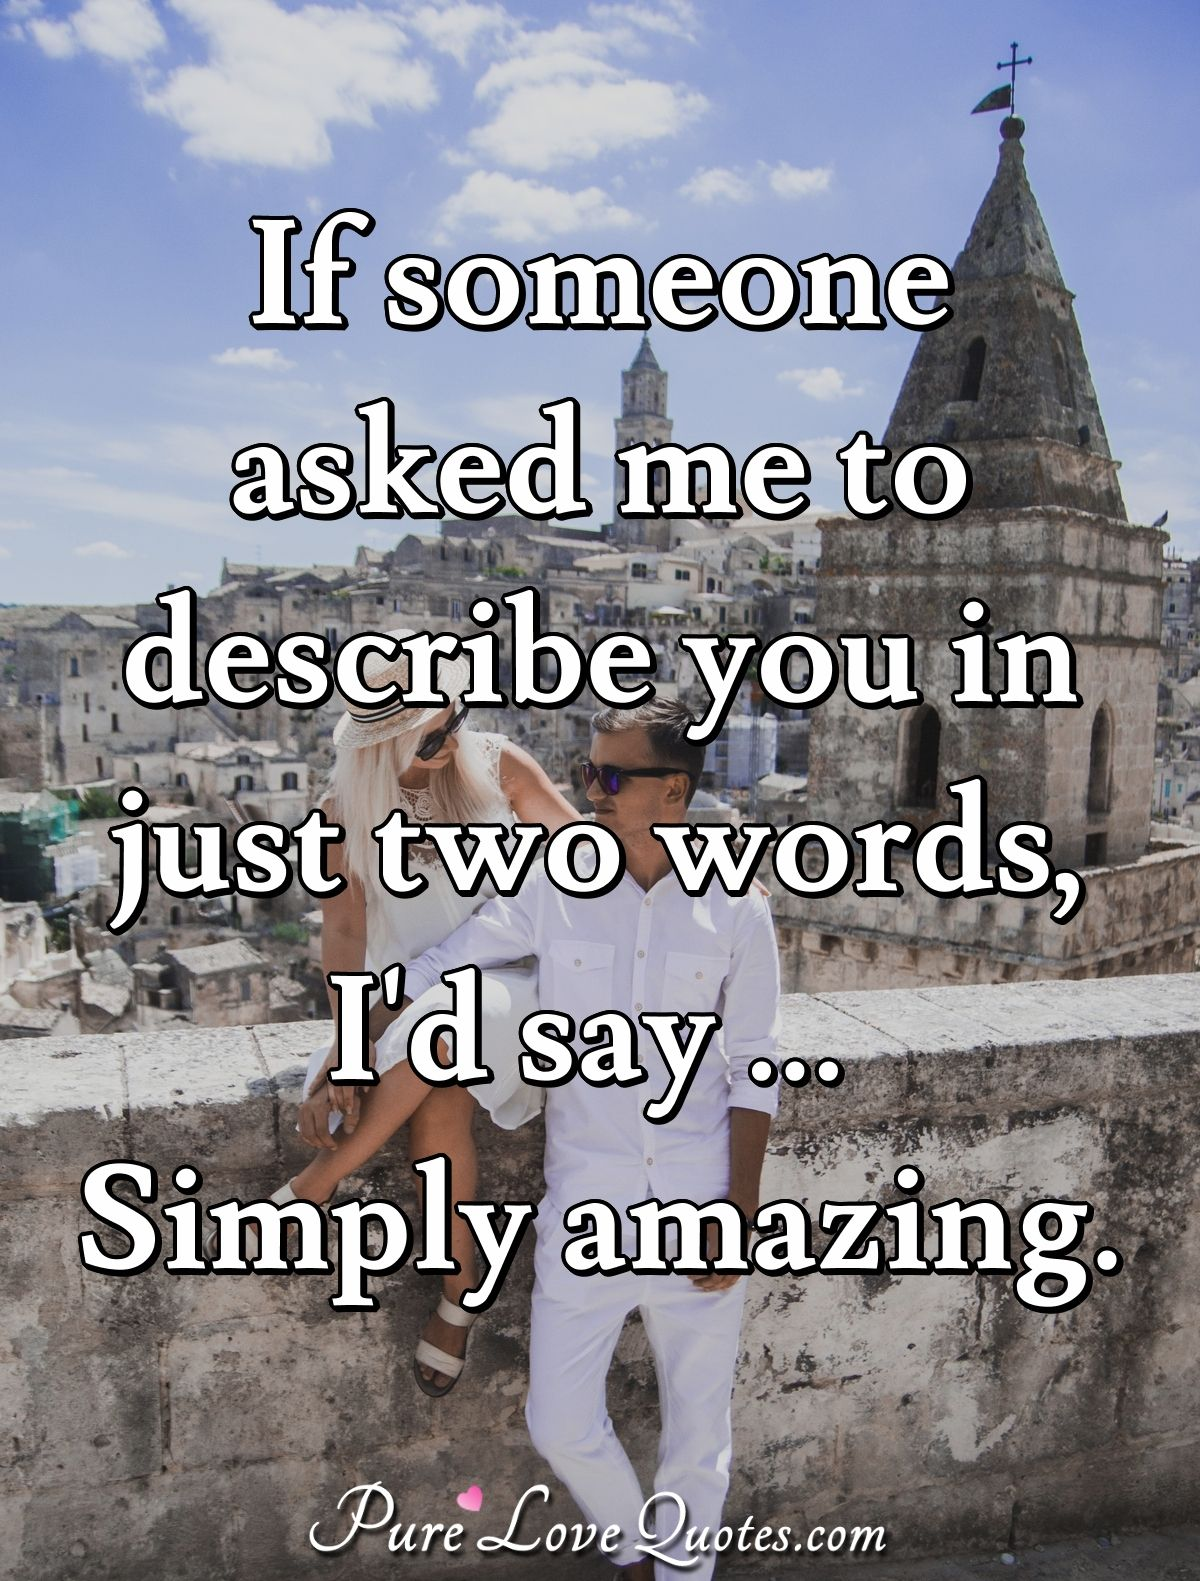 If someone asked me to describe you in just two words, I'd say ... Simply amazing. - Anonymous